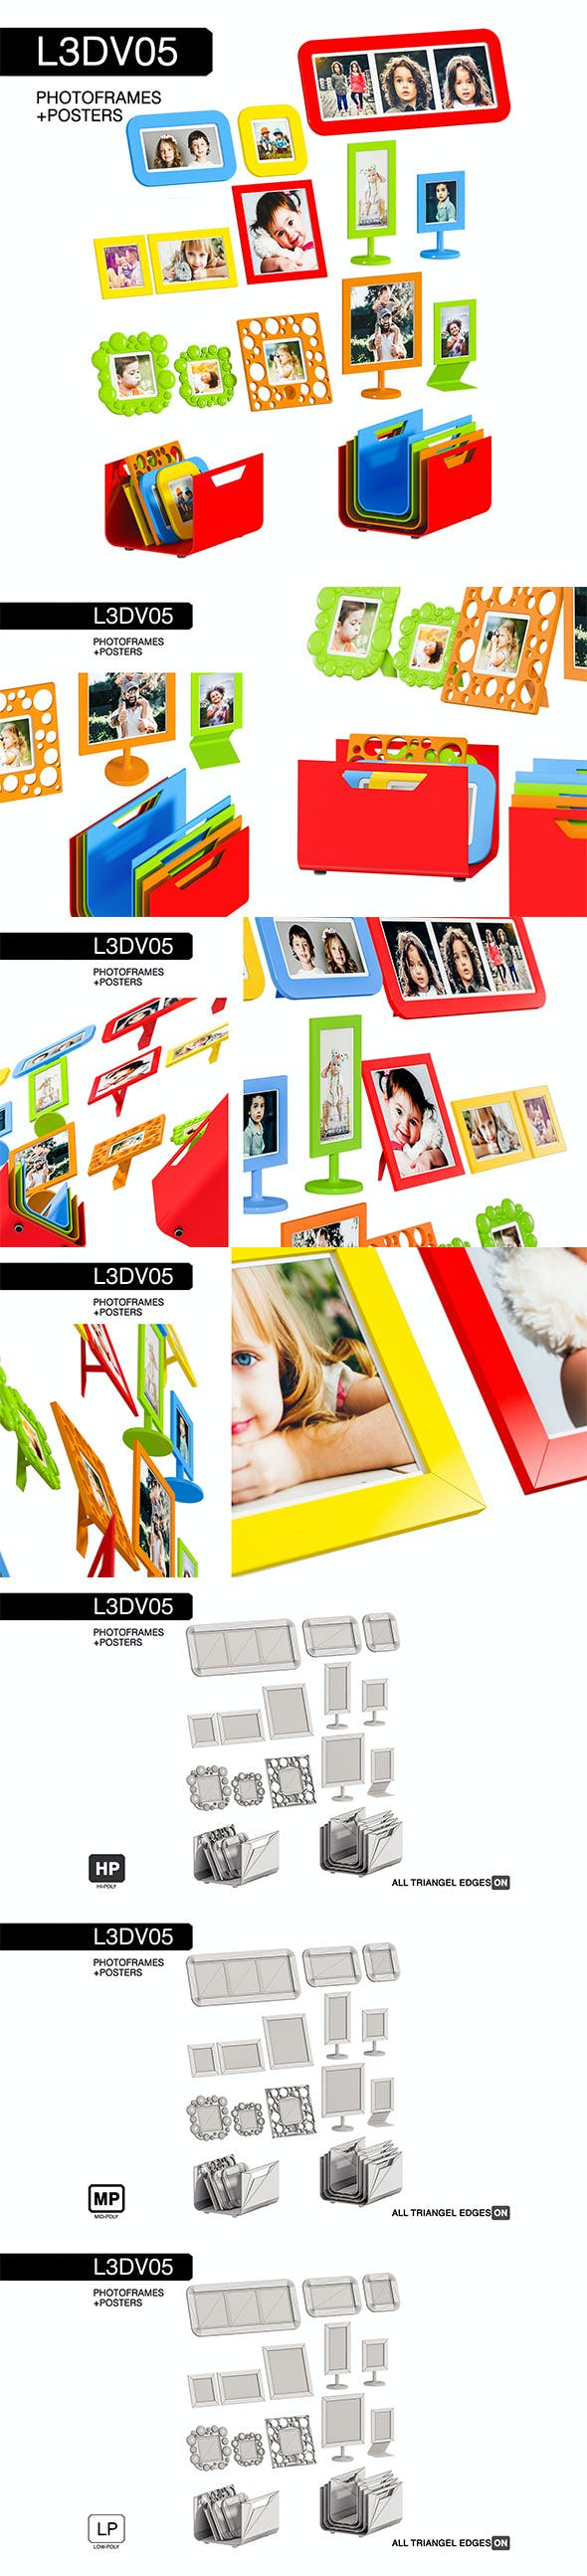 L3DV05G06 - photo frames holders set - 3DOcean Item for Sale